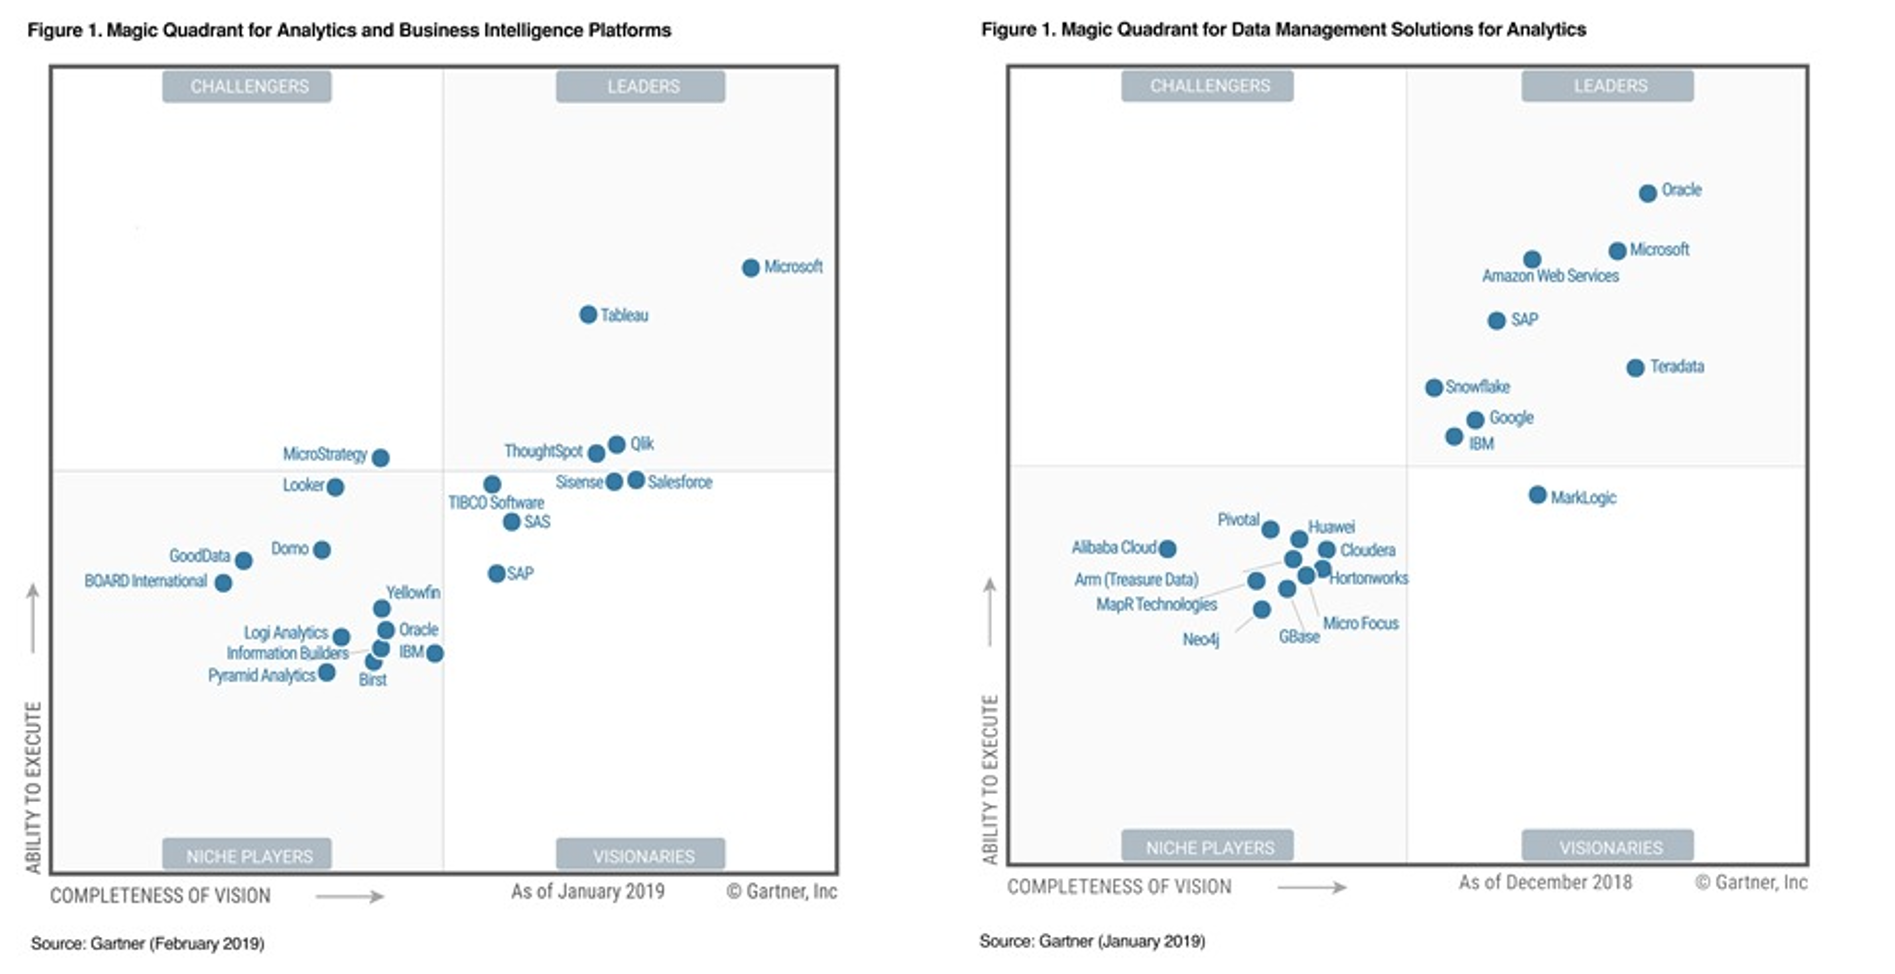 Gartner 2019 Magic Quadrant for Analytics and Business Intelligence Platforms und Gartner 2019 Magic Quadrant for Data Management Solutions for Analytics